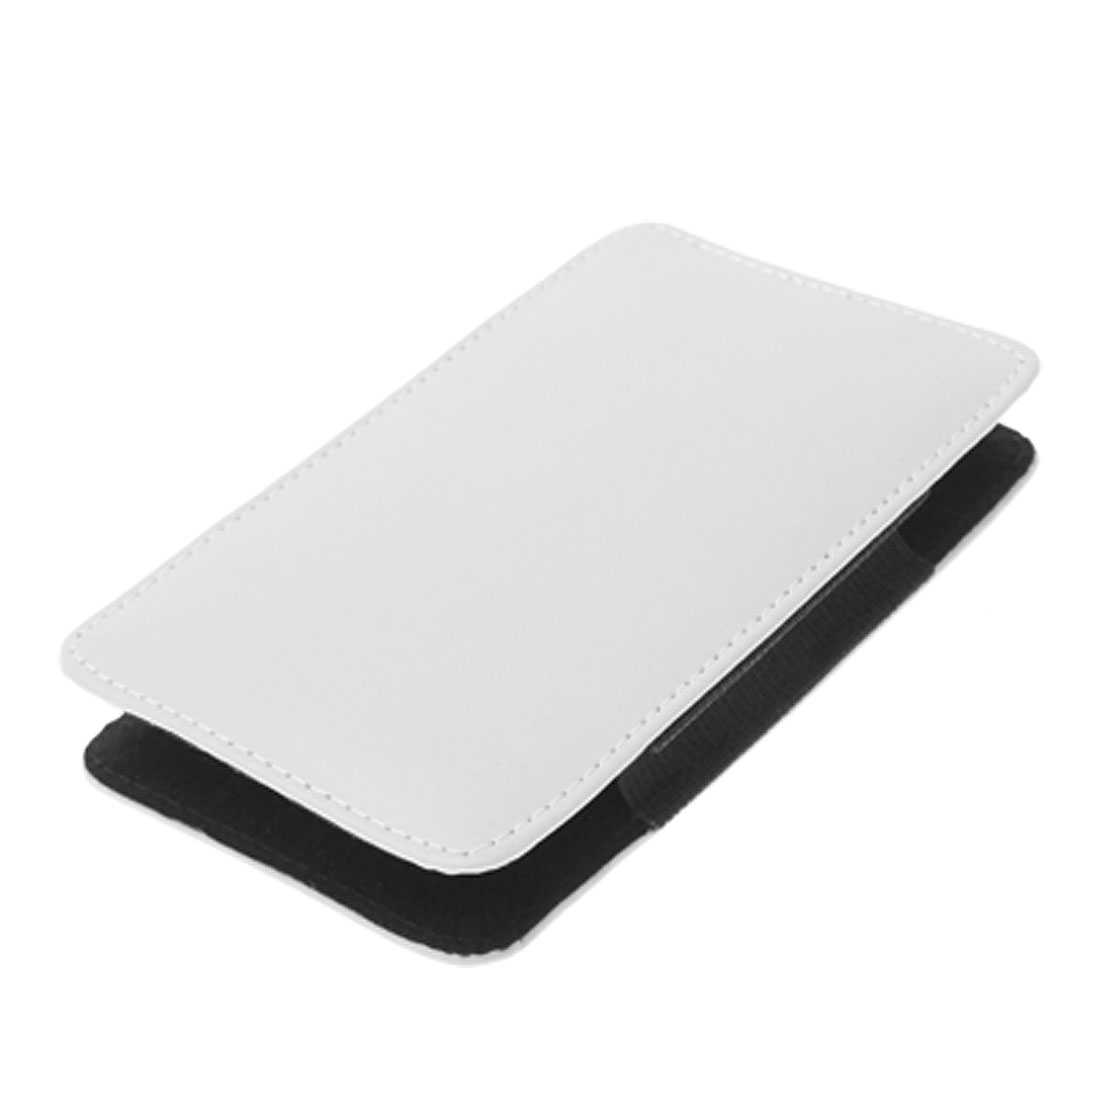 2.5 Inch HDD Hard Drive Disk Faux Leather Case Pouch White